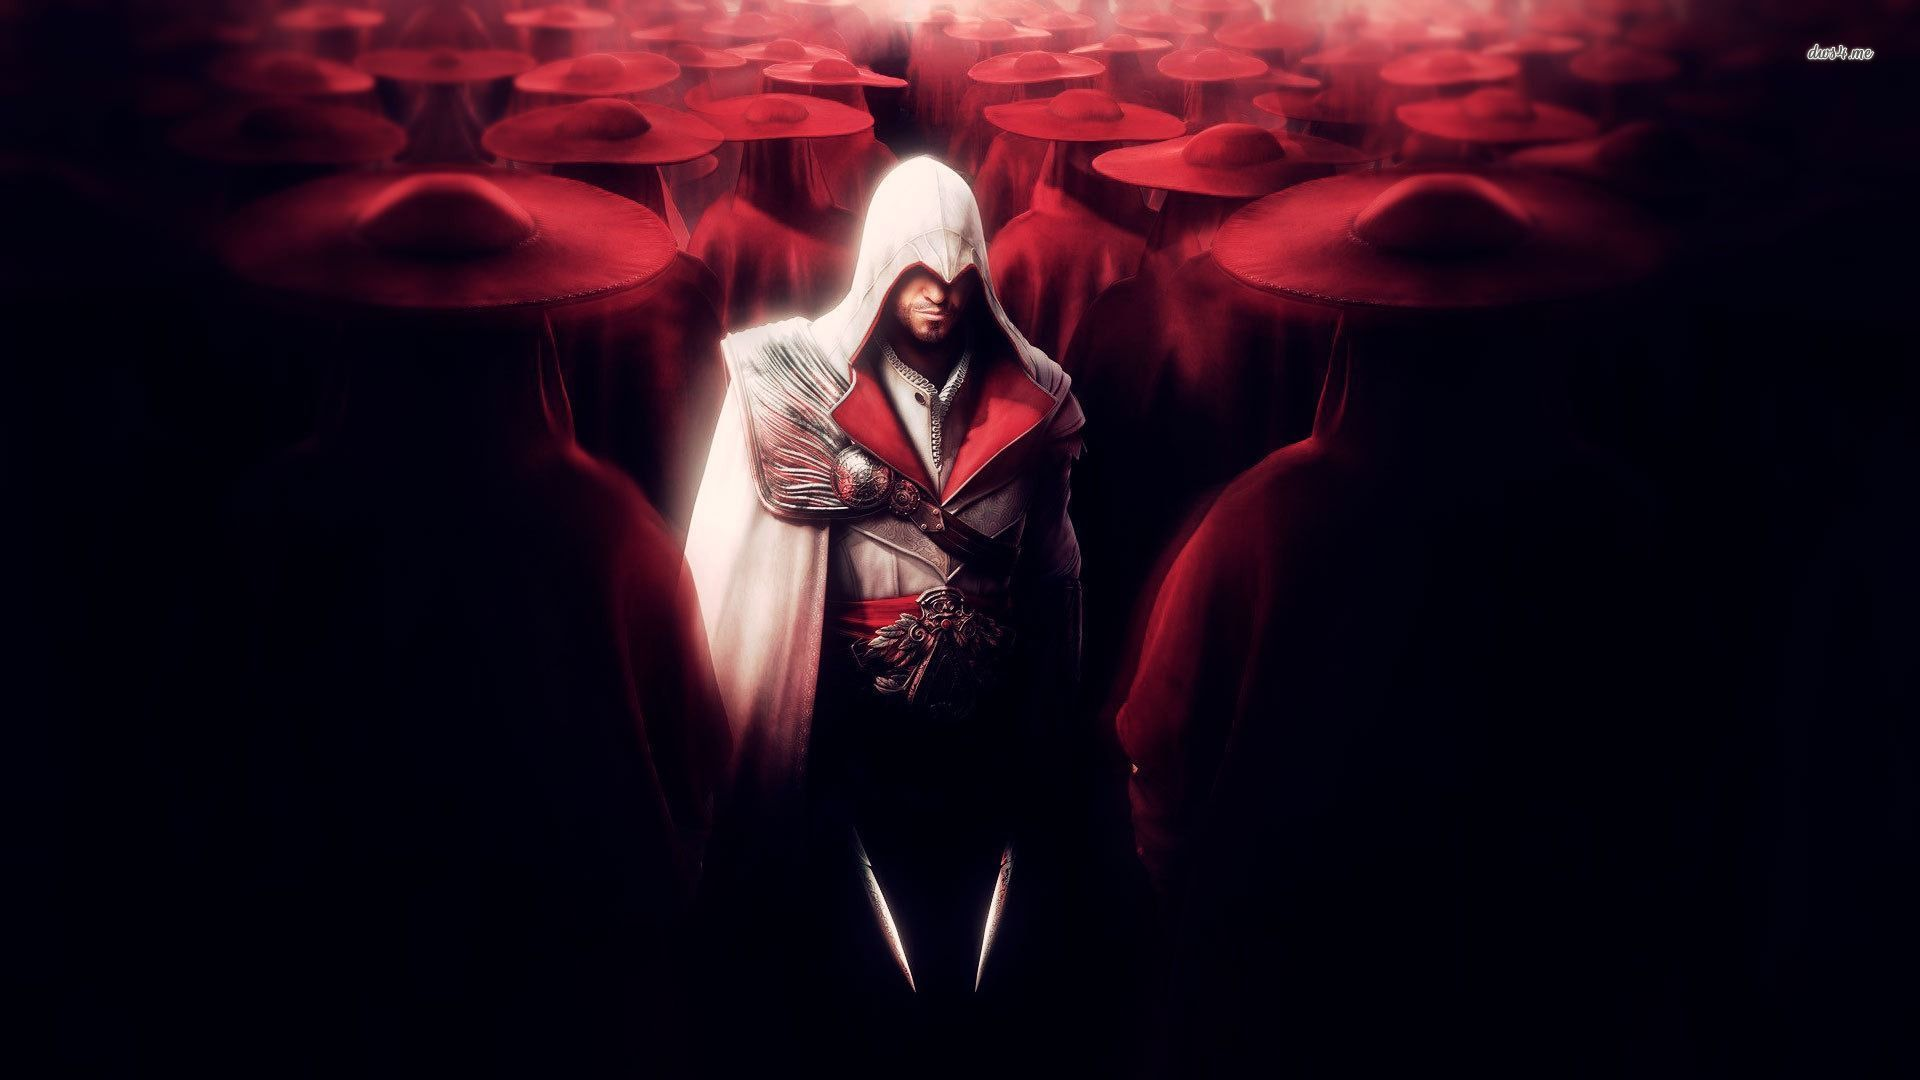 Free Download Assassins Creed Ezio Wallpaper Background Gv6r0